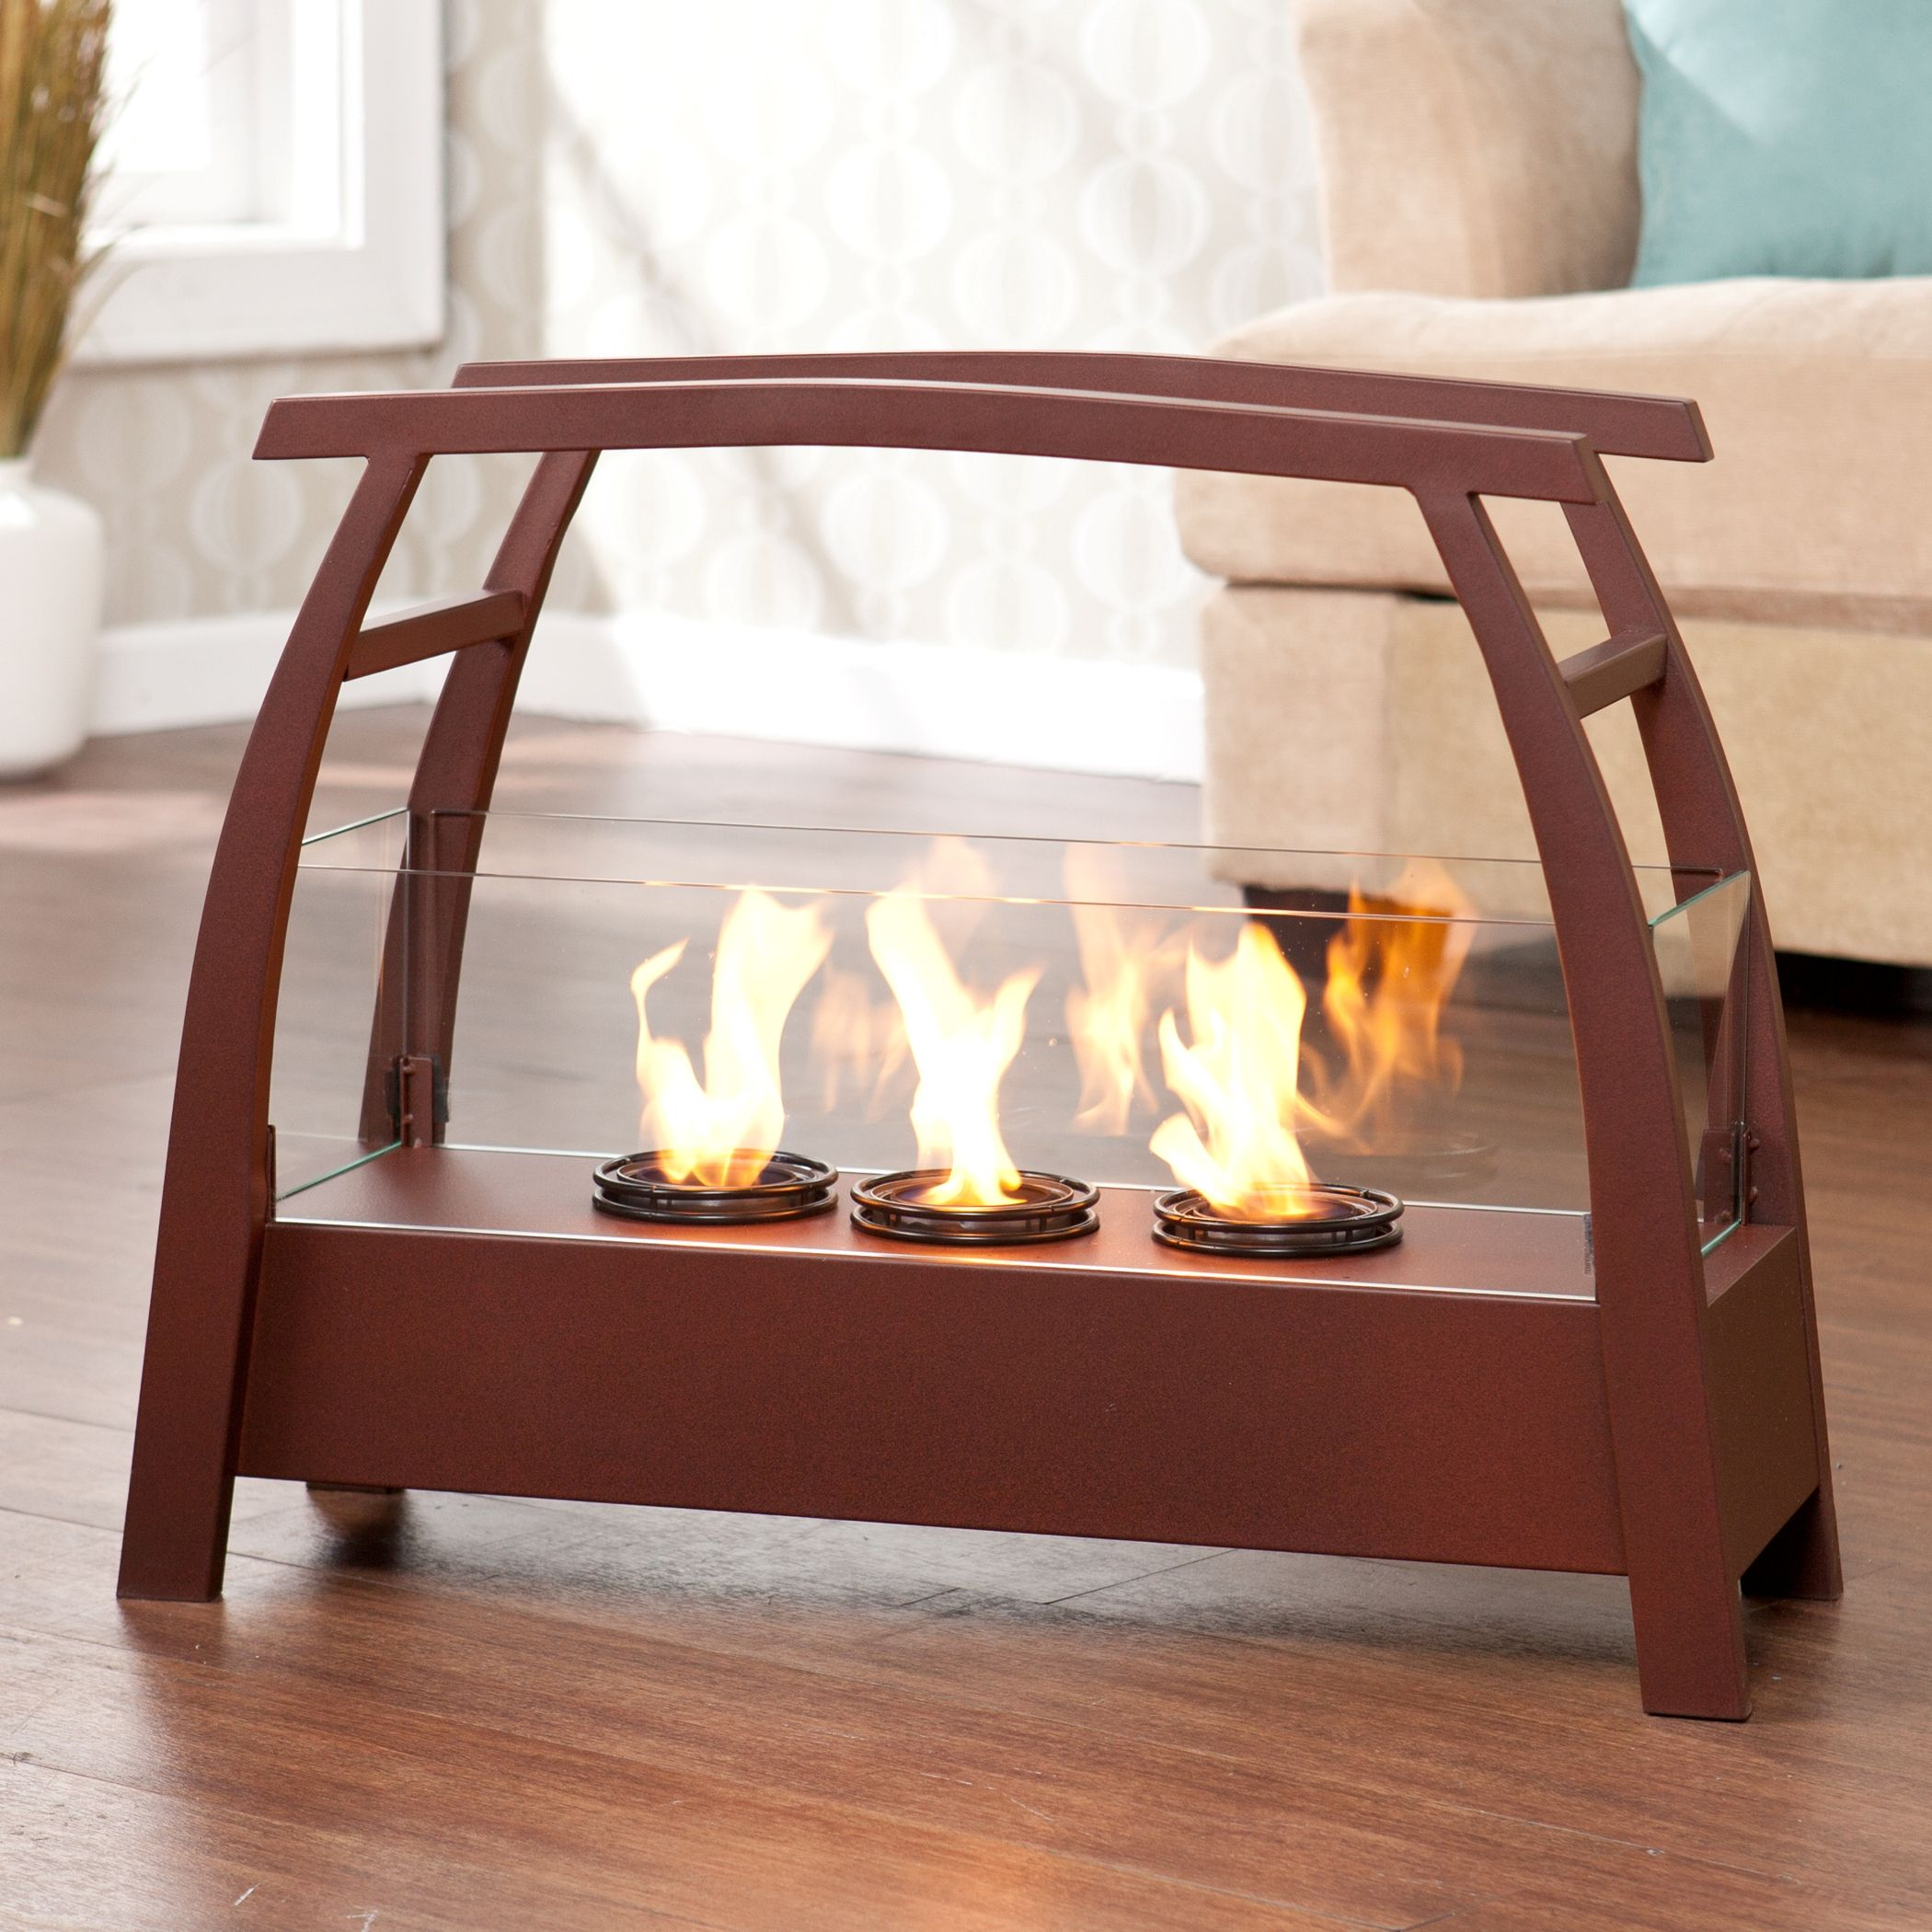 portable fireplace for indoor and outdoor use. This piec… | Pinteres…